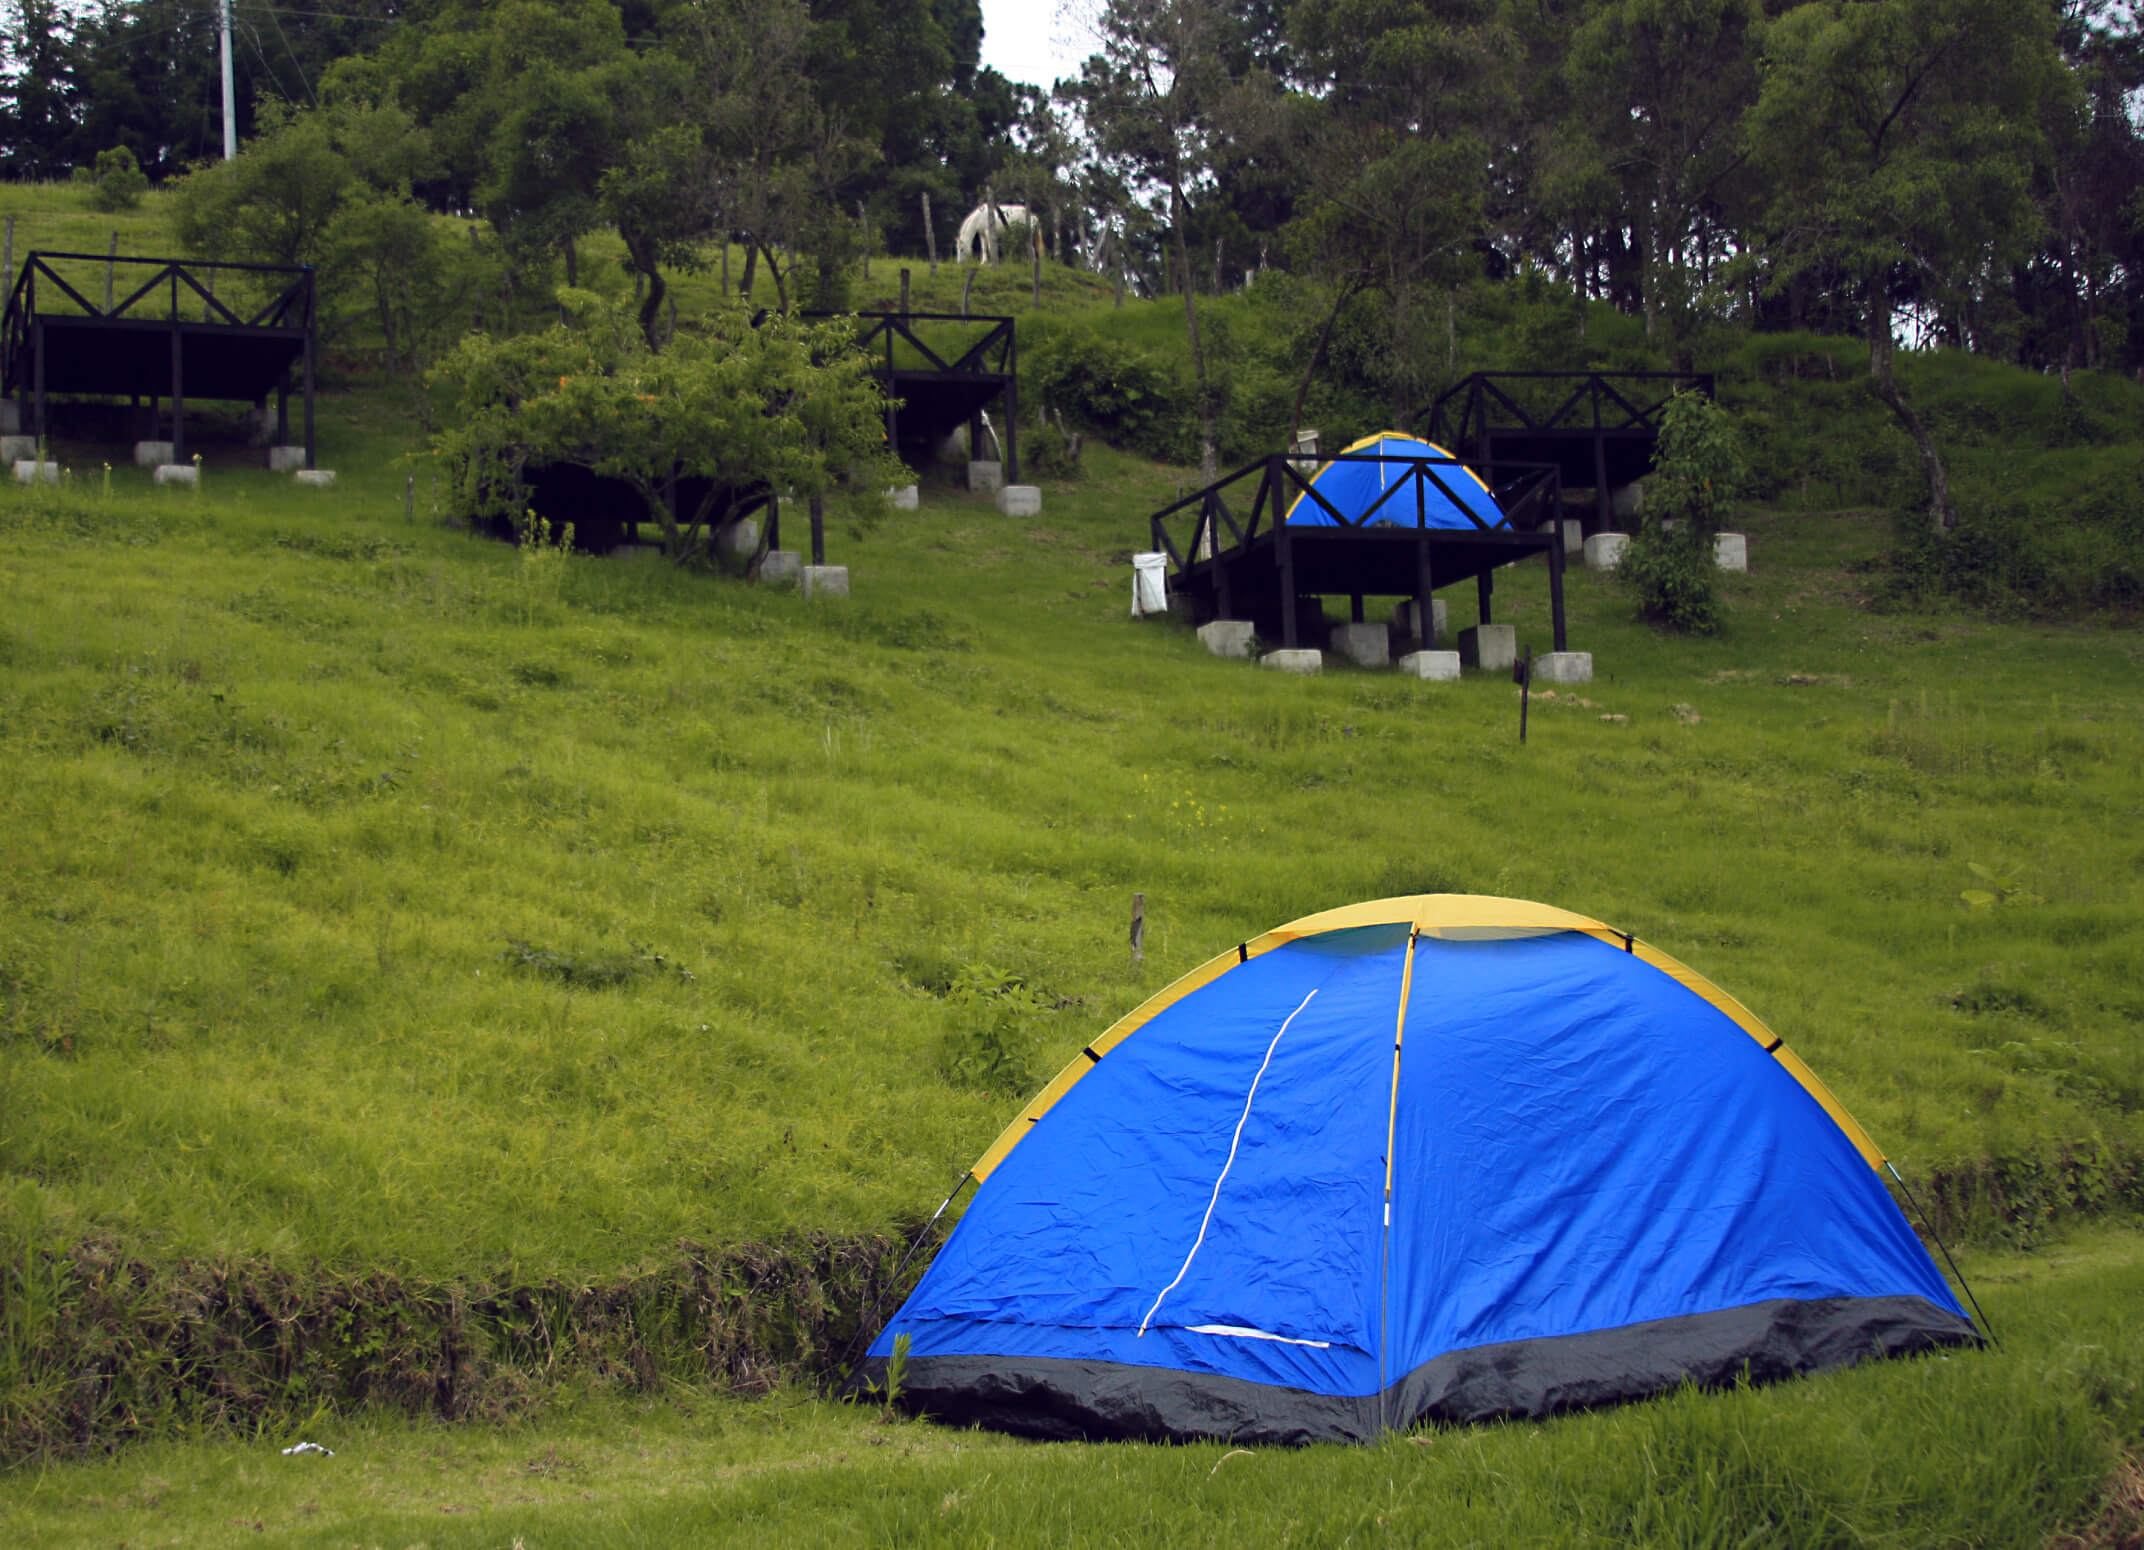 Allaarriba campingnatural interna 02